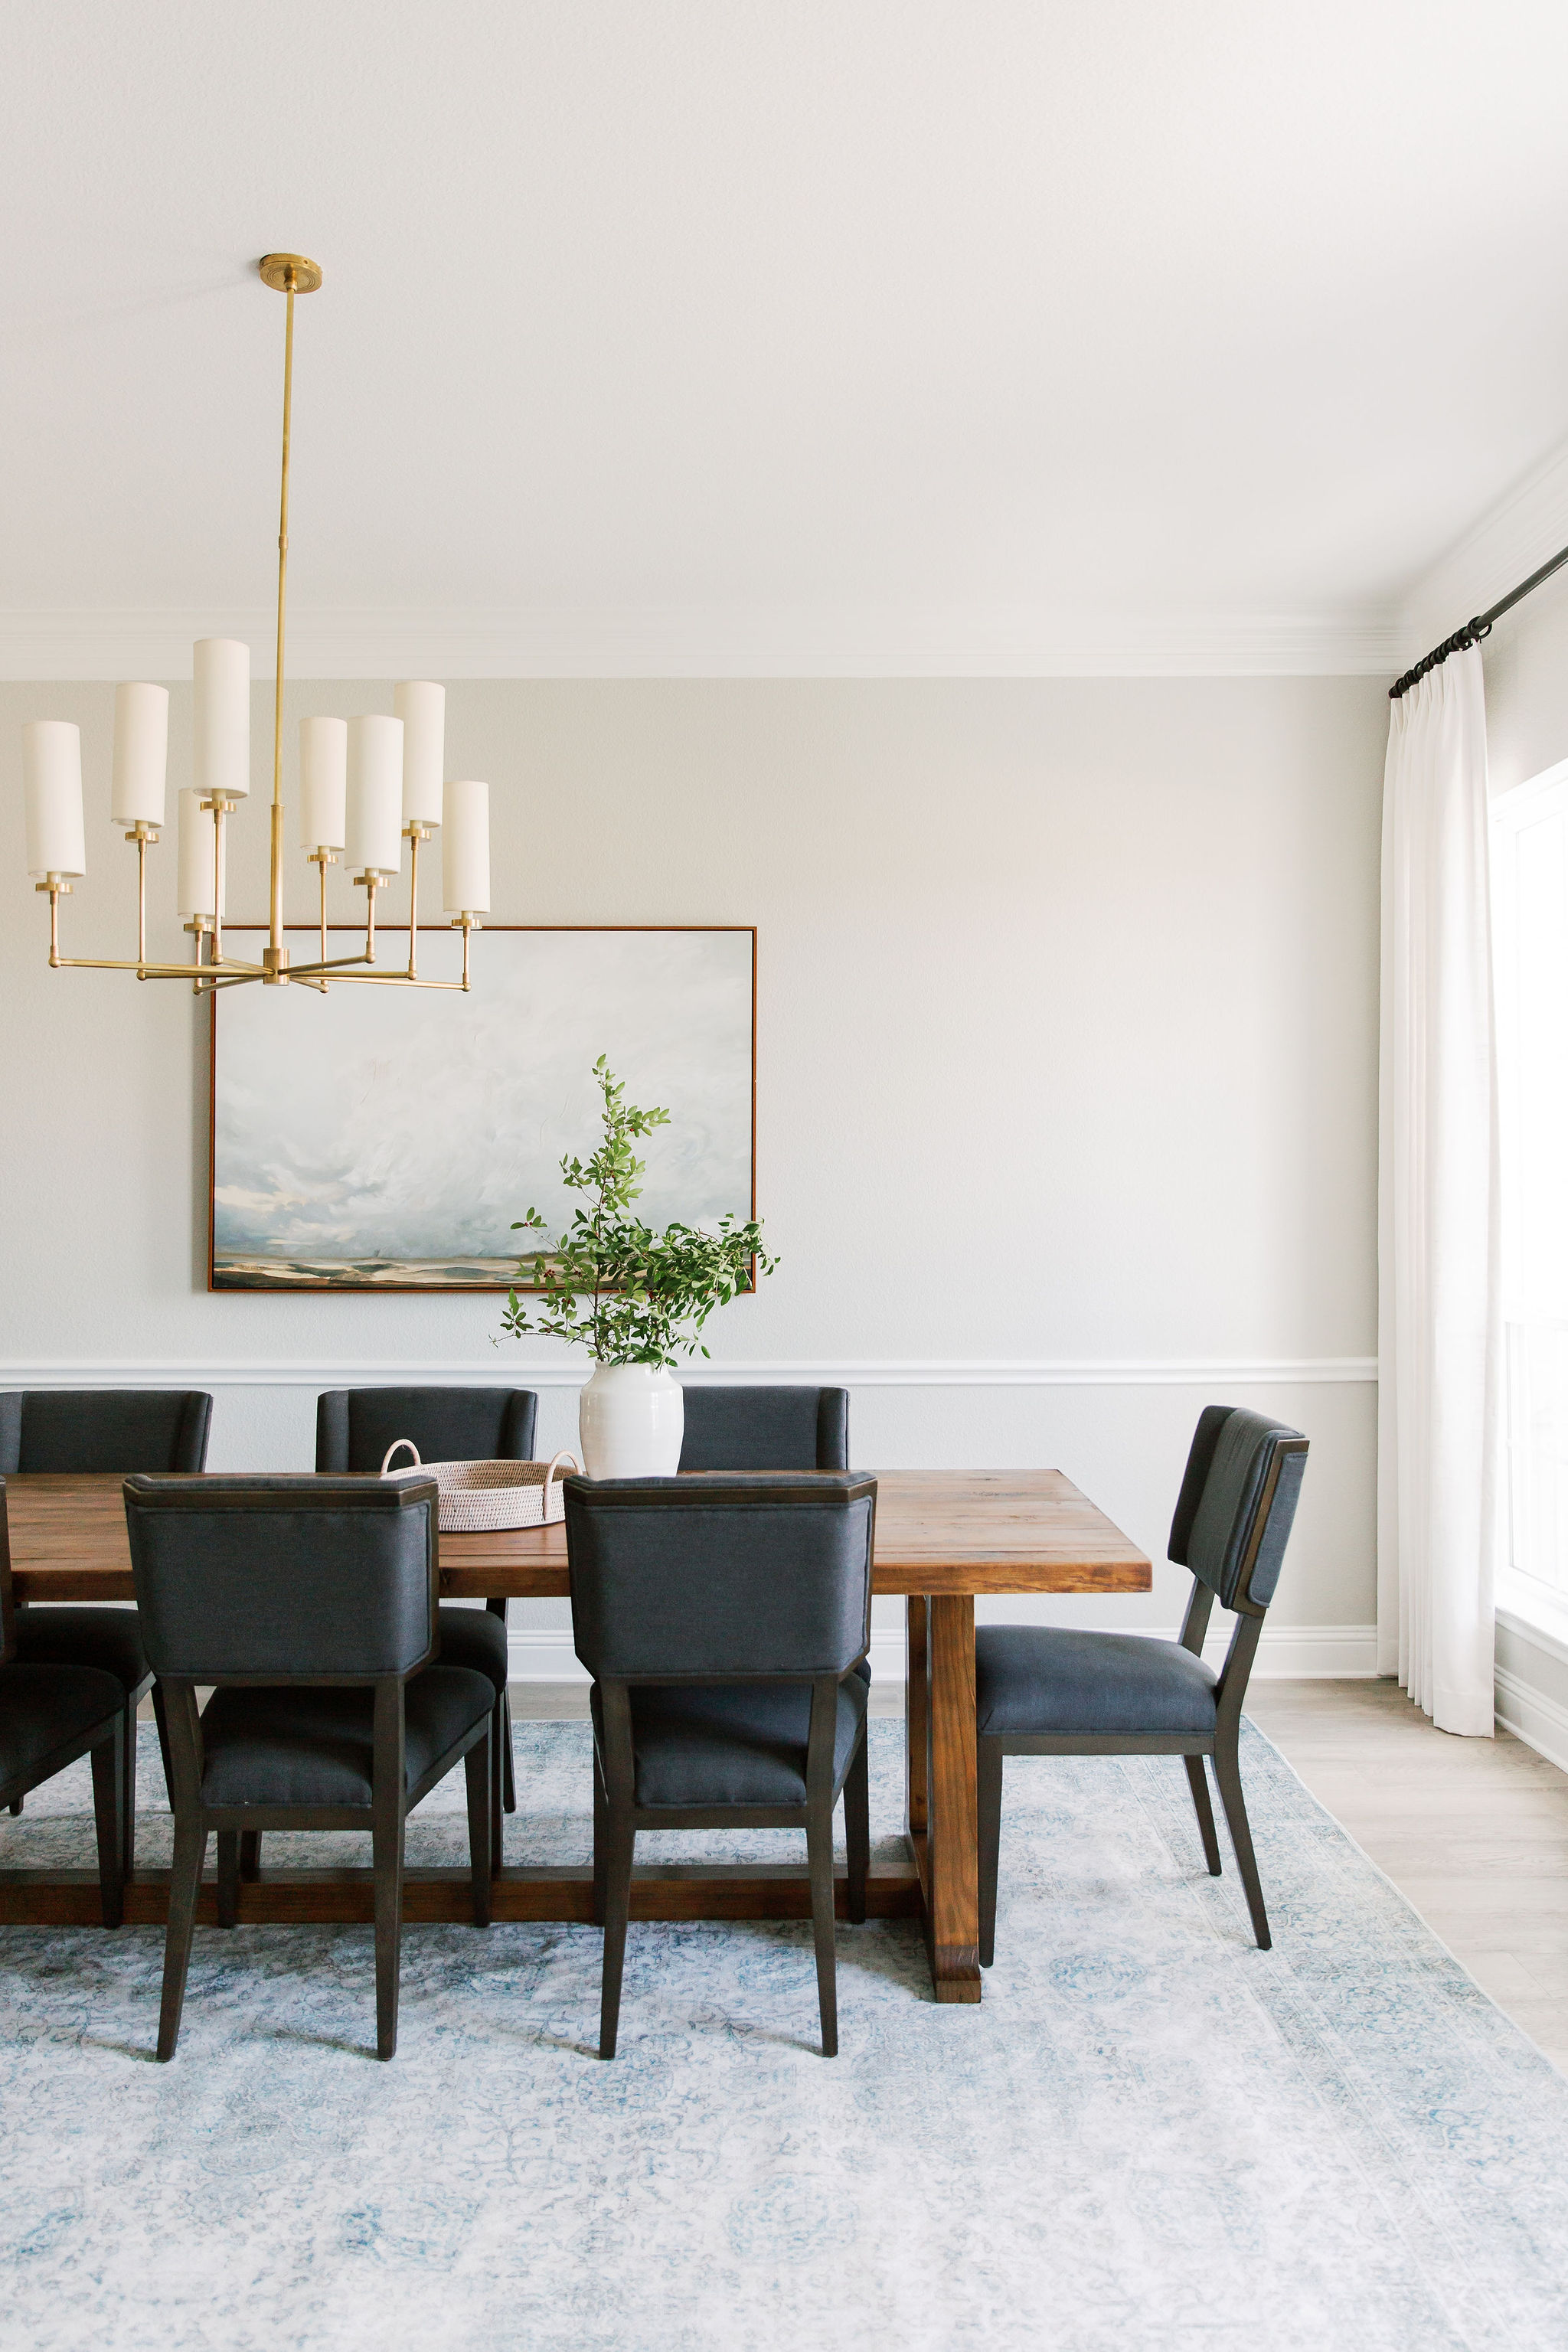 Dining room design with oversized artwor